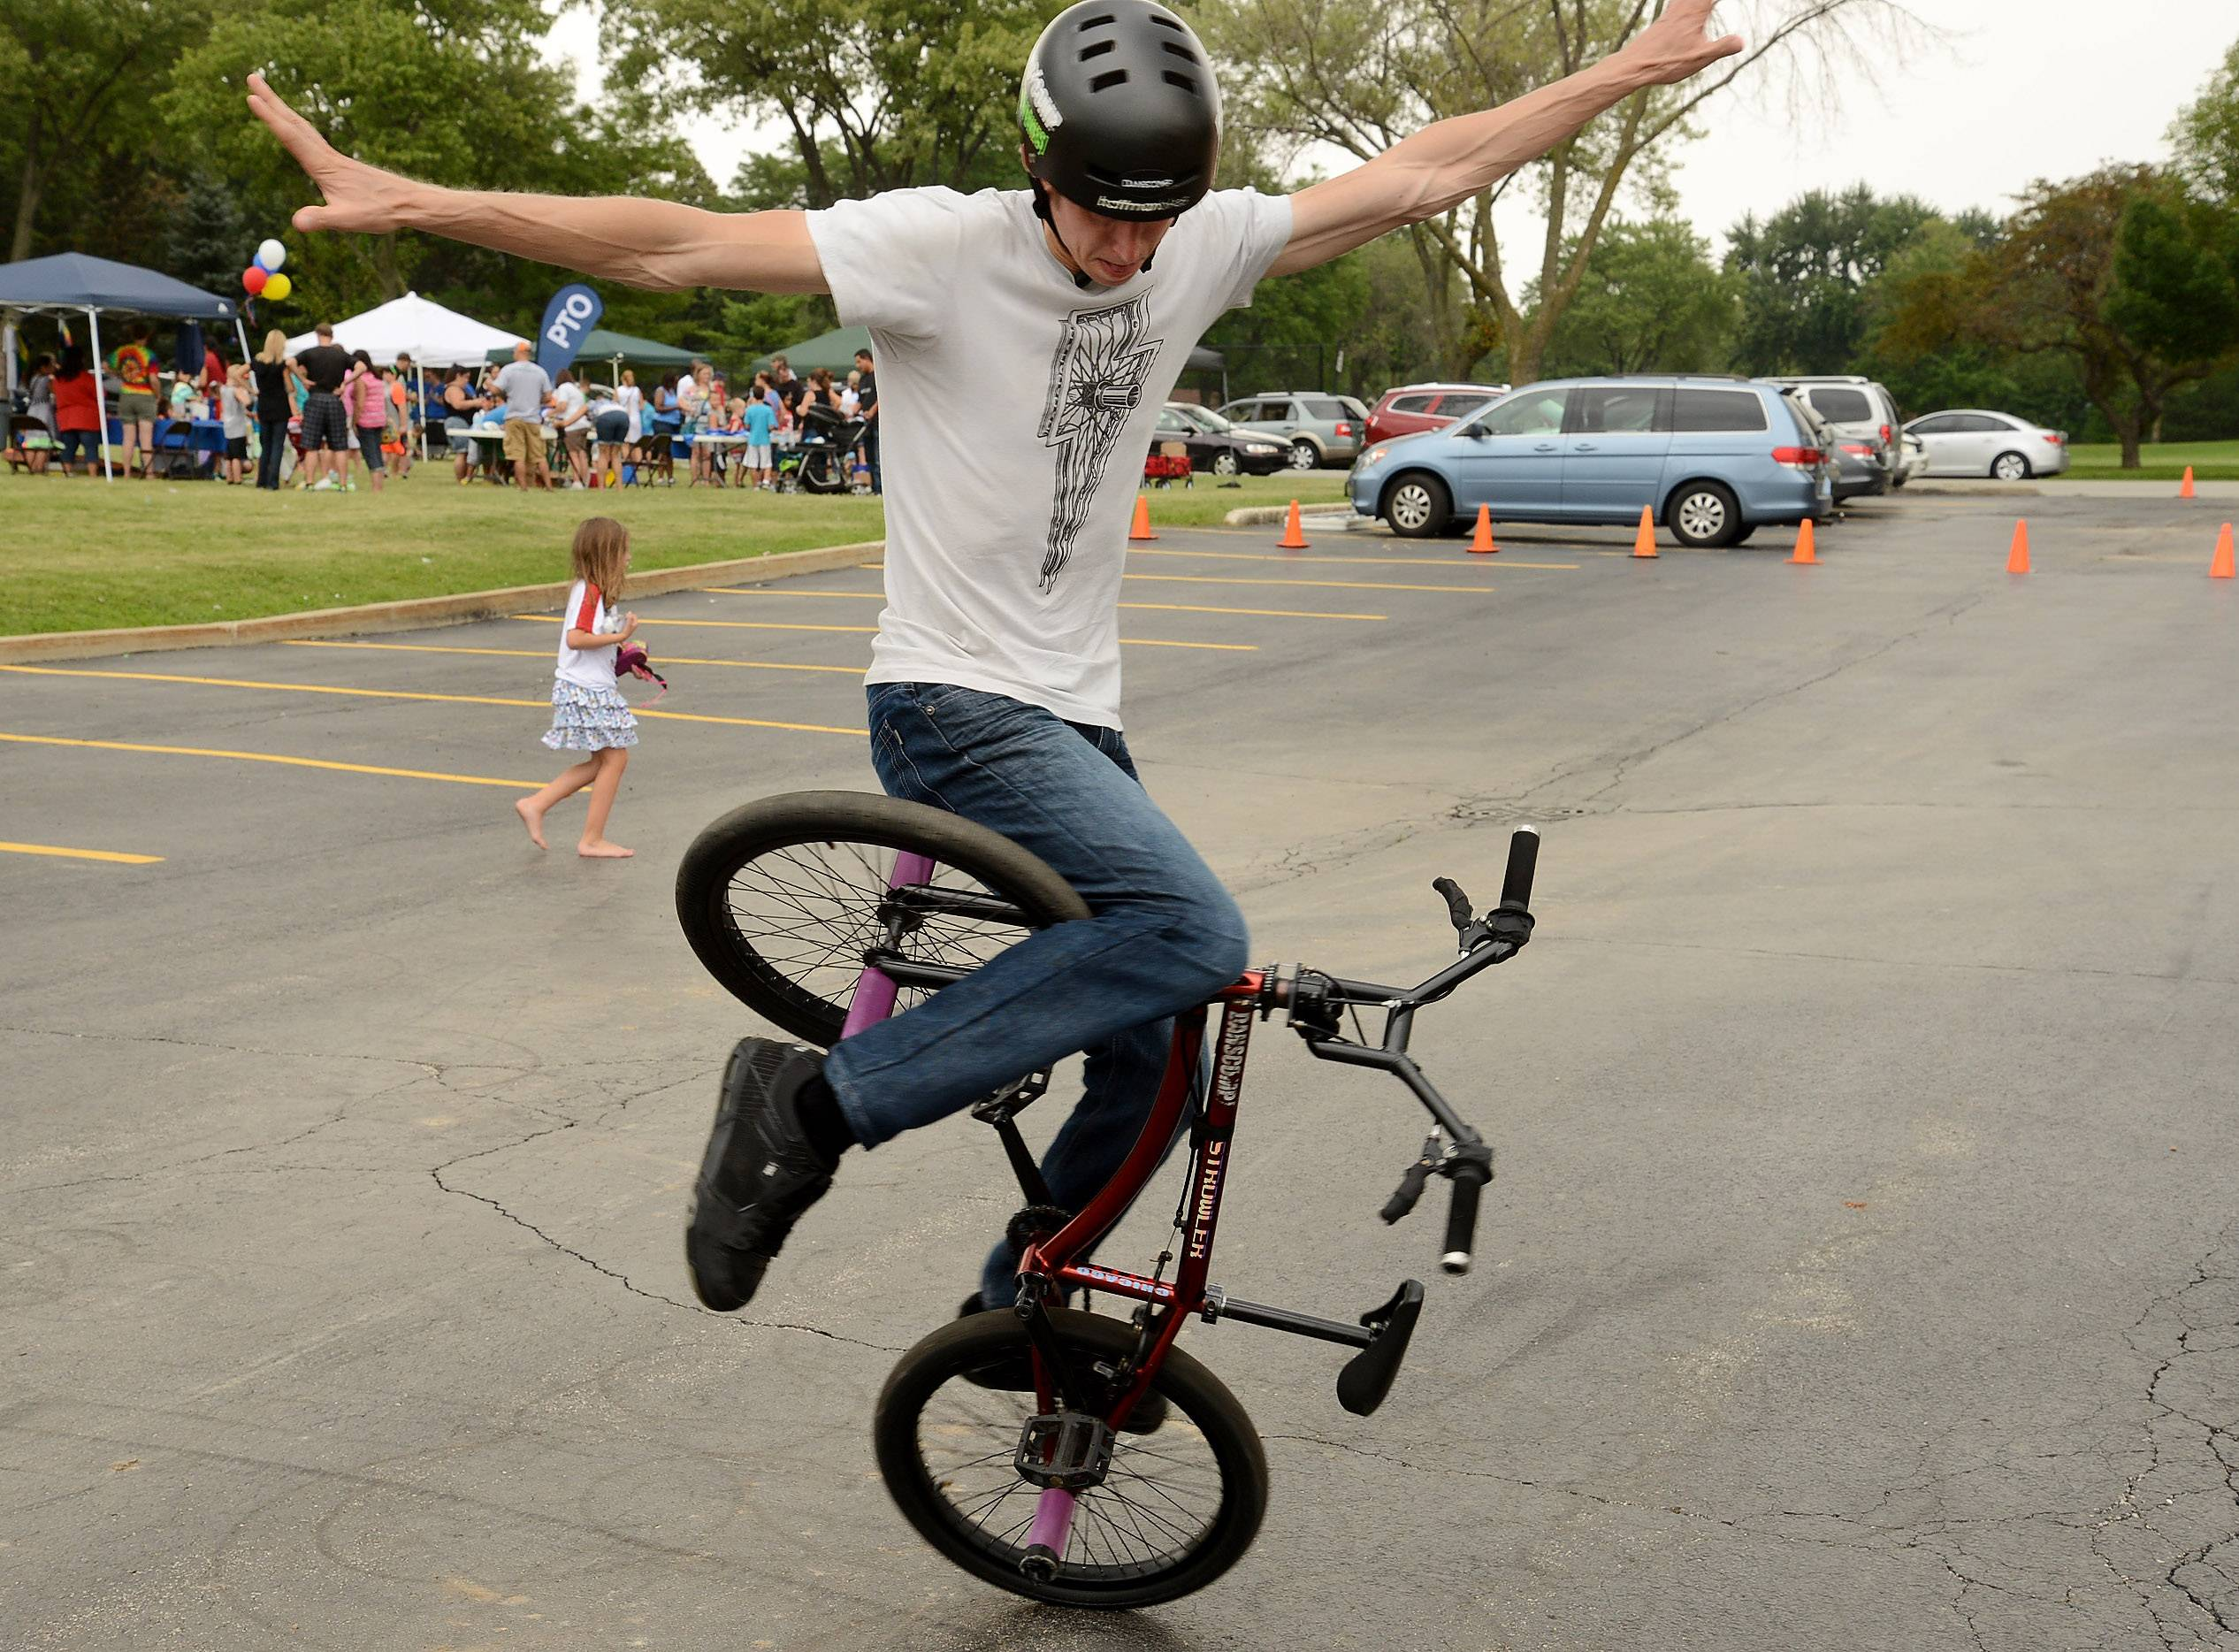 BMX Champion Matt Wilhelm of Naperville demonstrates riding BMX Flatland at the Elk Grove Township Elementary District 59 back-to-school celebration Saturday at Grove Junior High School in Elk Grove Village.